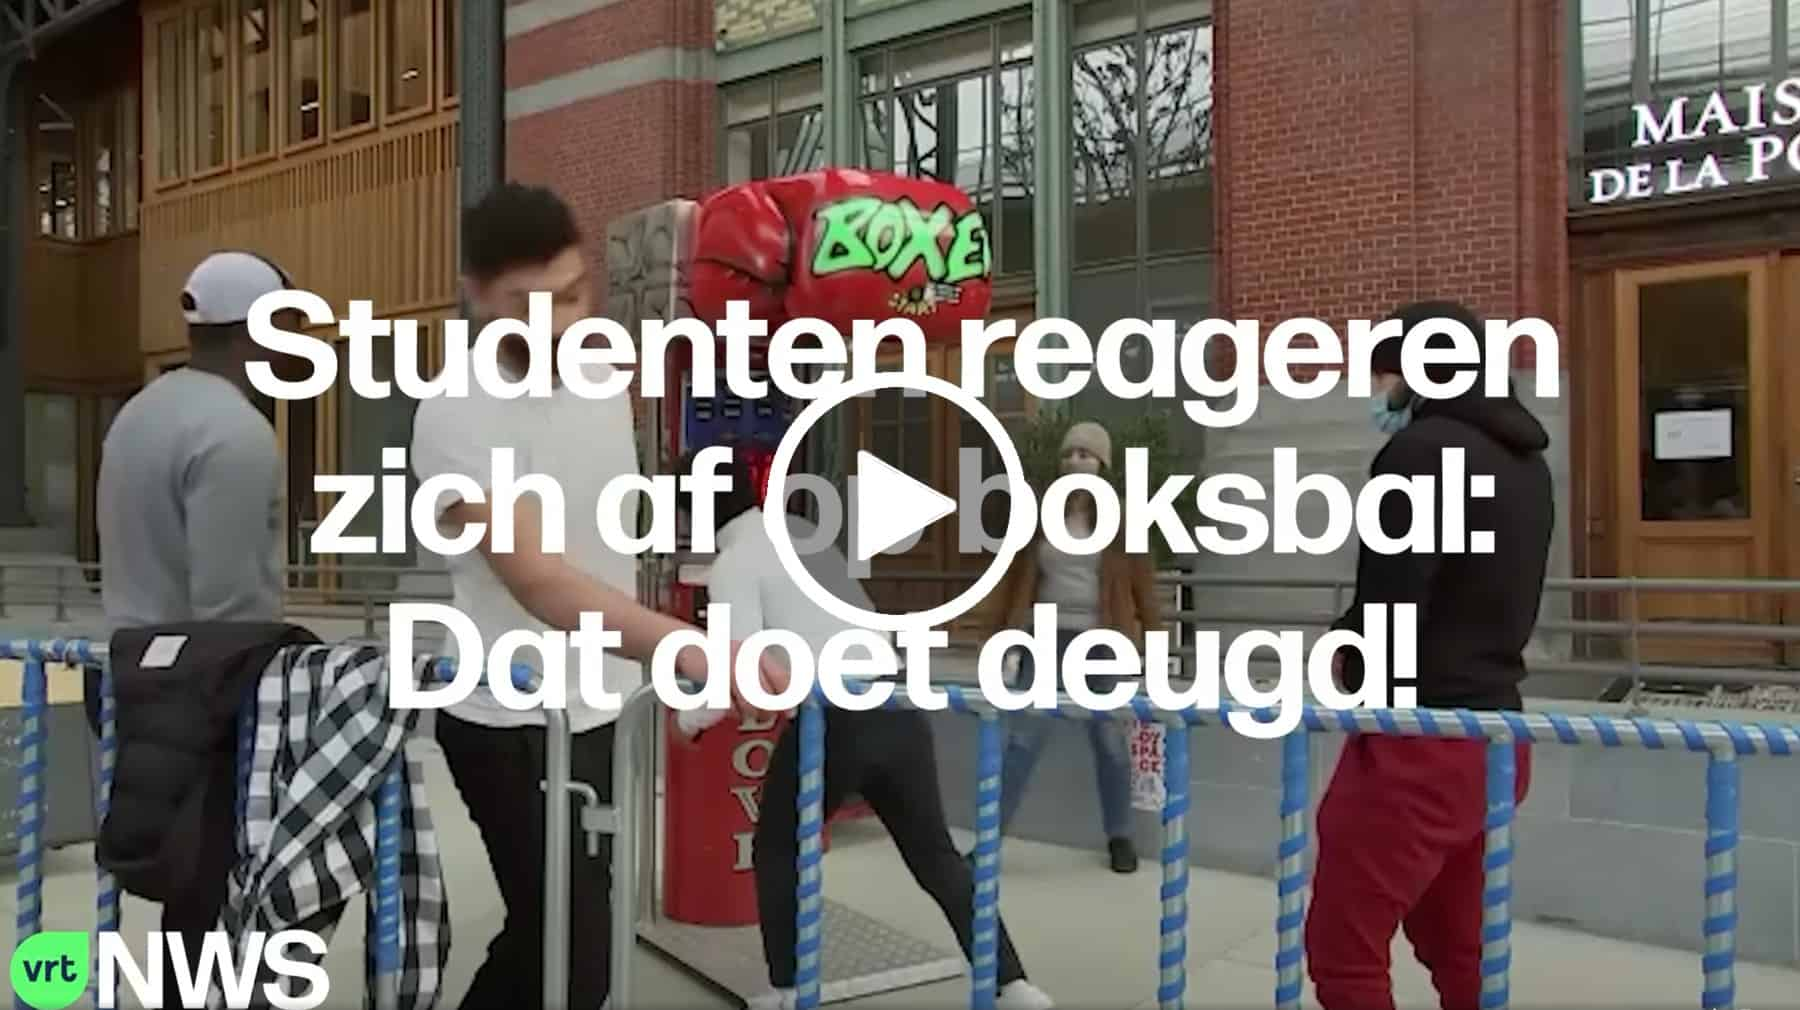 Boksbal als stress relief studenten